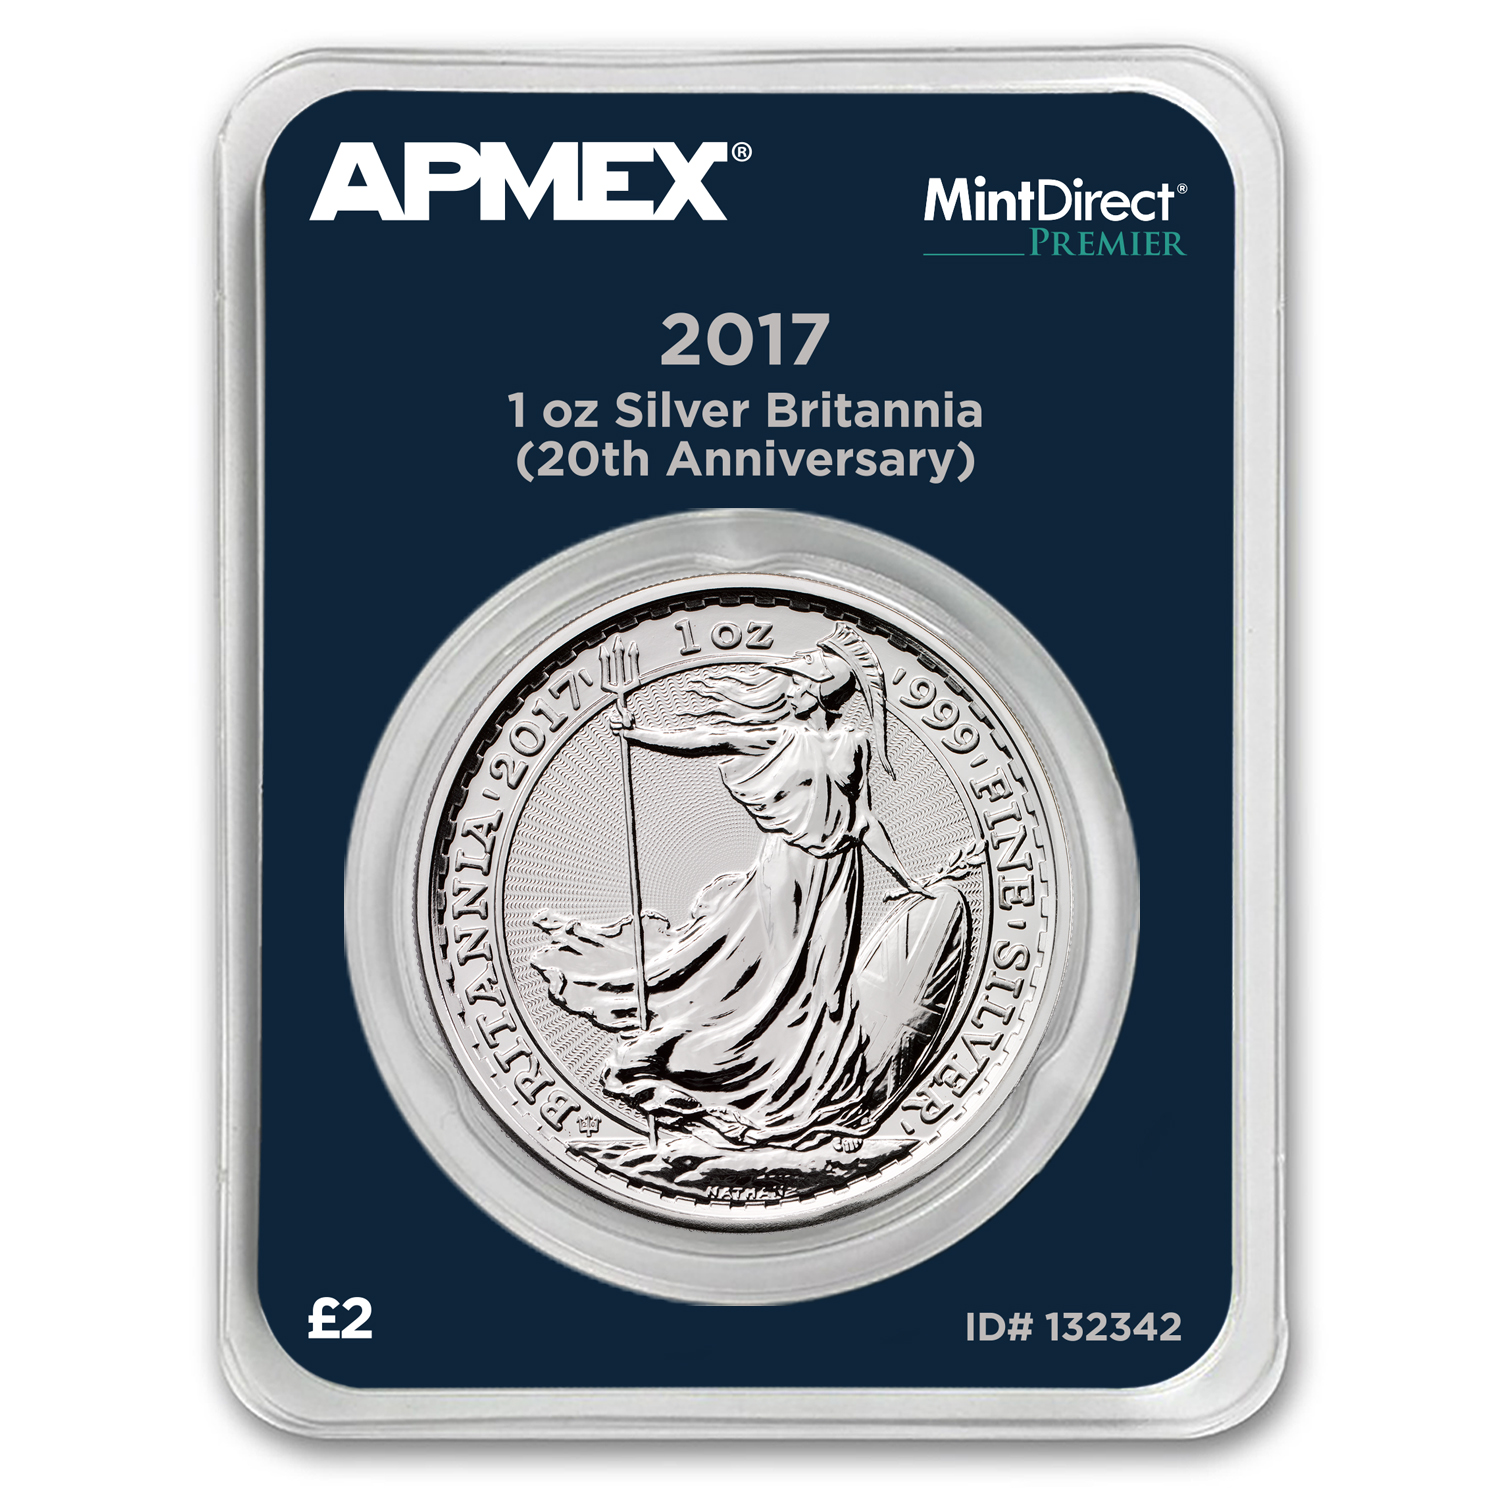 2017 1 oz Silver Britannia 20th Anniversary (MintDirect® Premier)